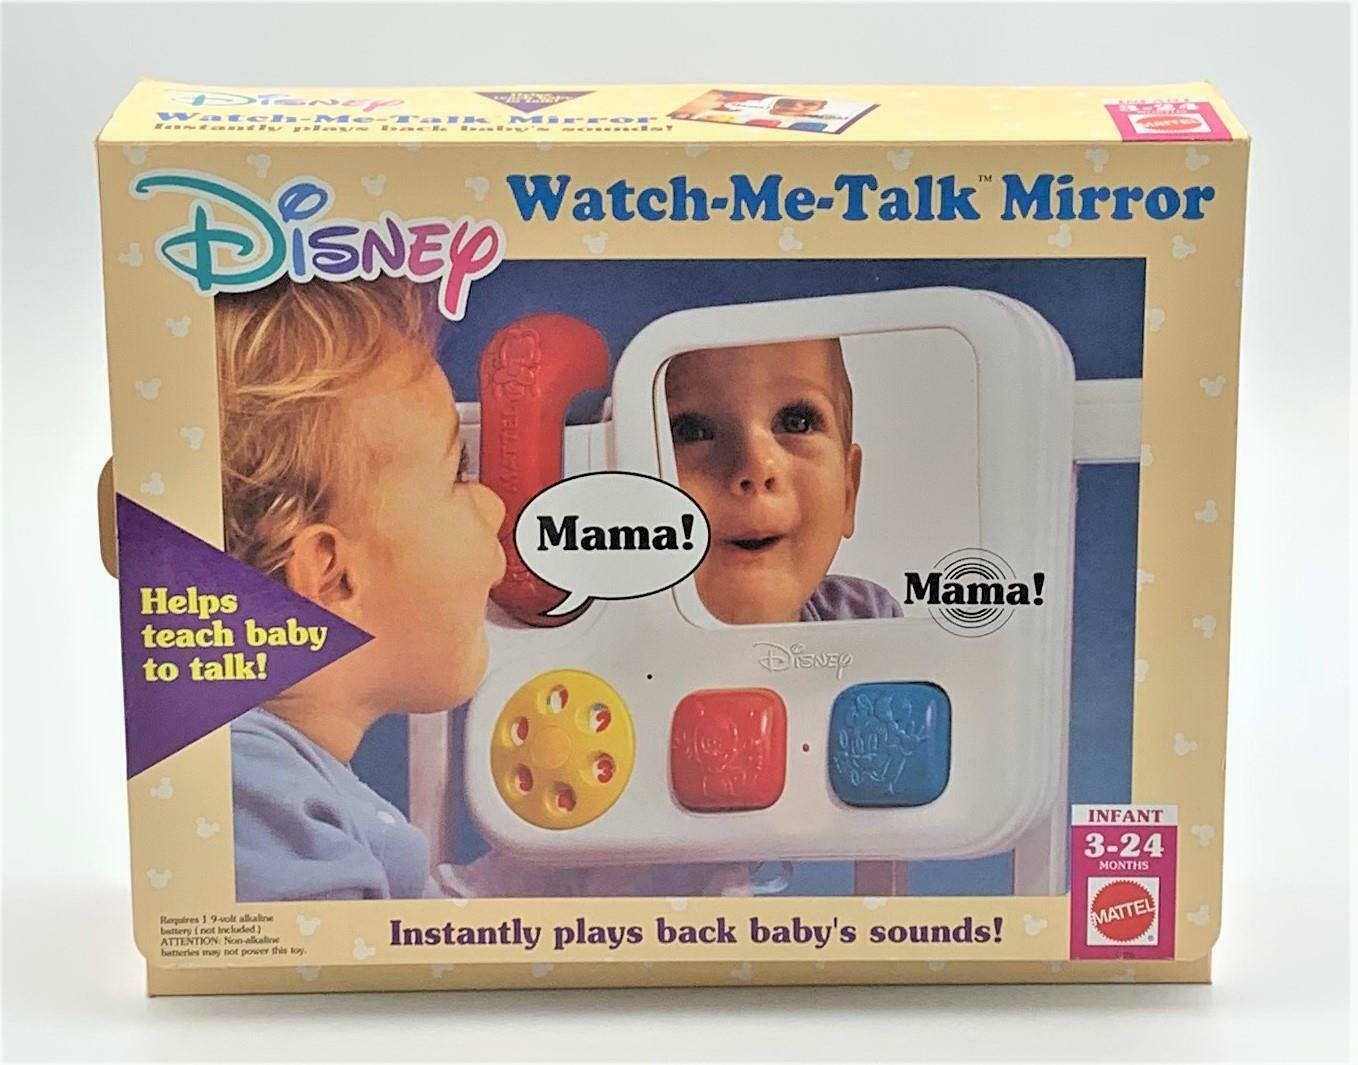 Primary image for Mattel Disney Watch Me Talk Mirror Infant Crib Play Teach Baby To Talk Vintage